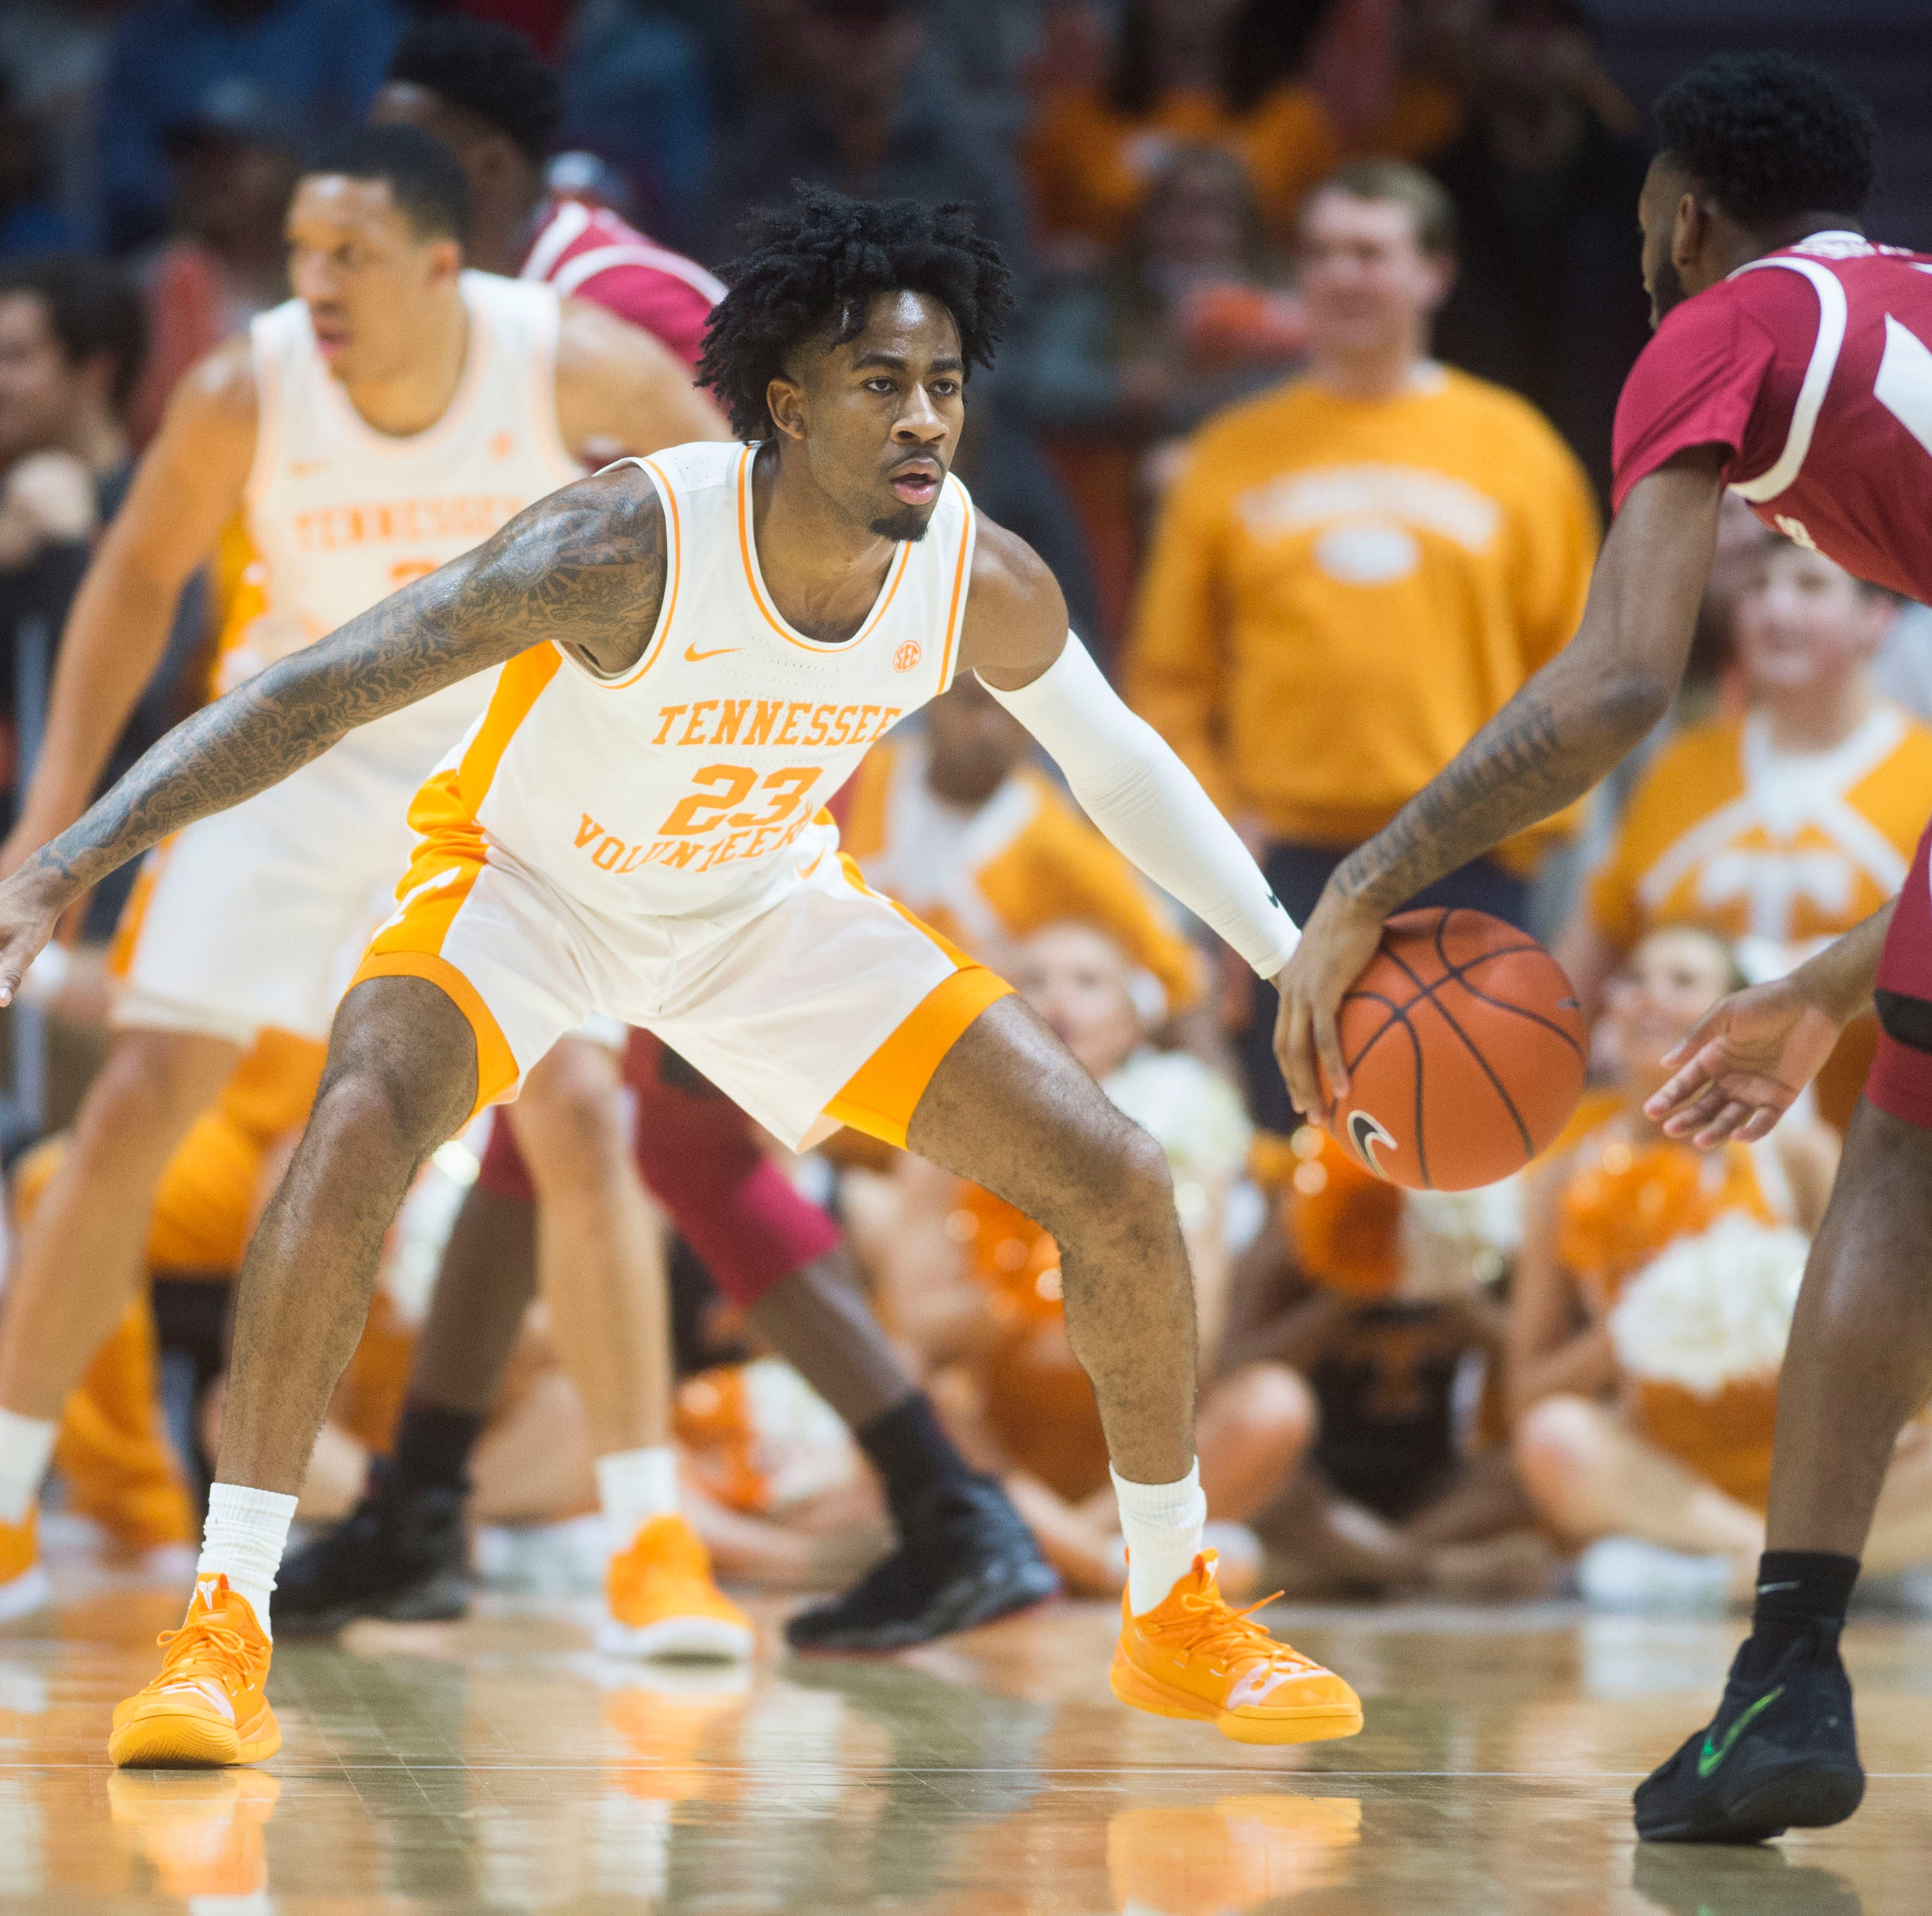 UT Vols basketball: Jordan Bowden, Lamonte Turner roll Arkansas off bench